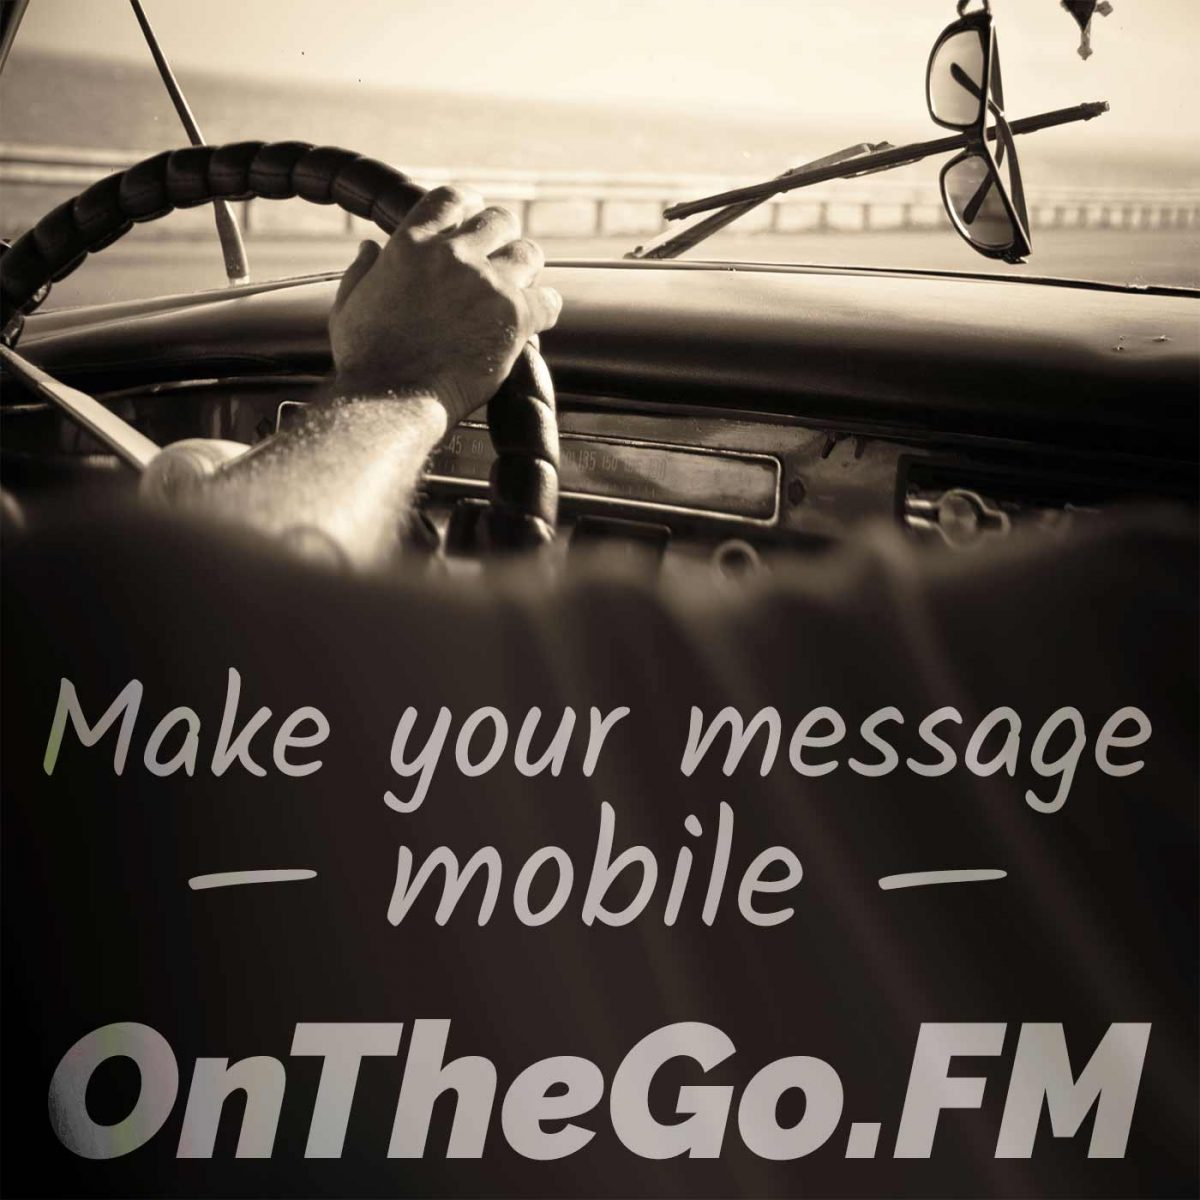 on-the-go-fm-make-your-message-mobile-1400-v2